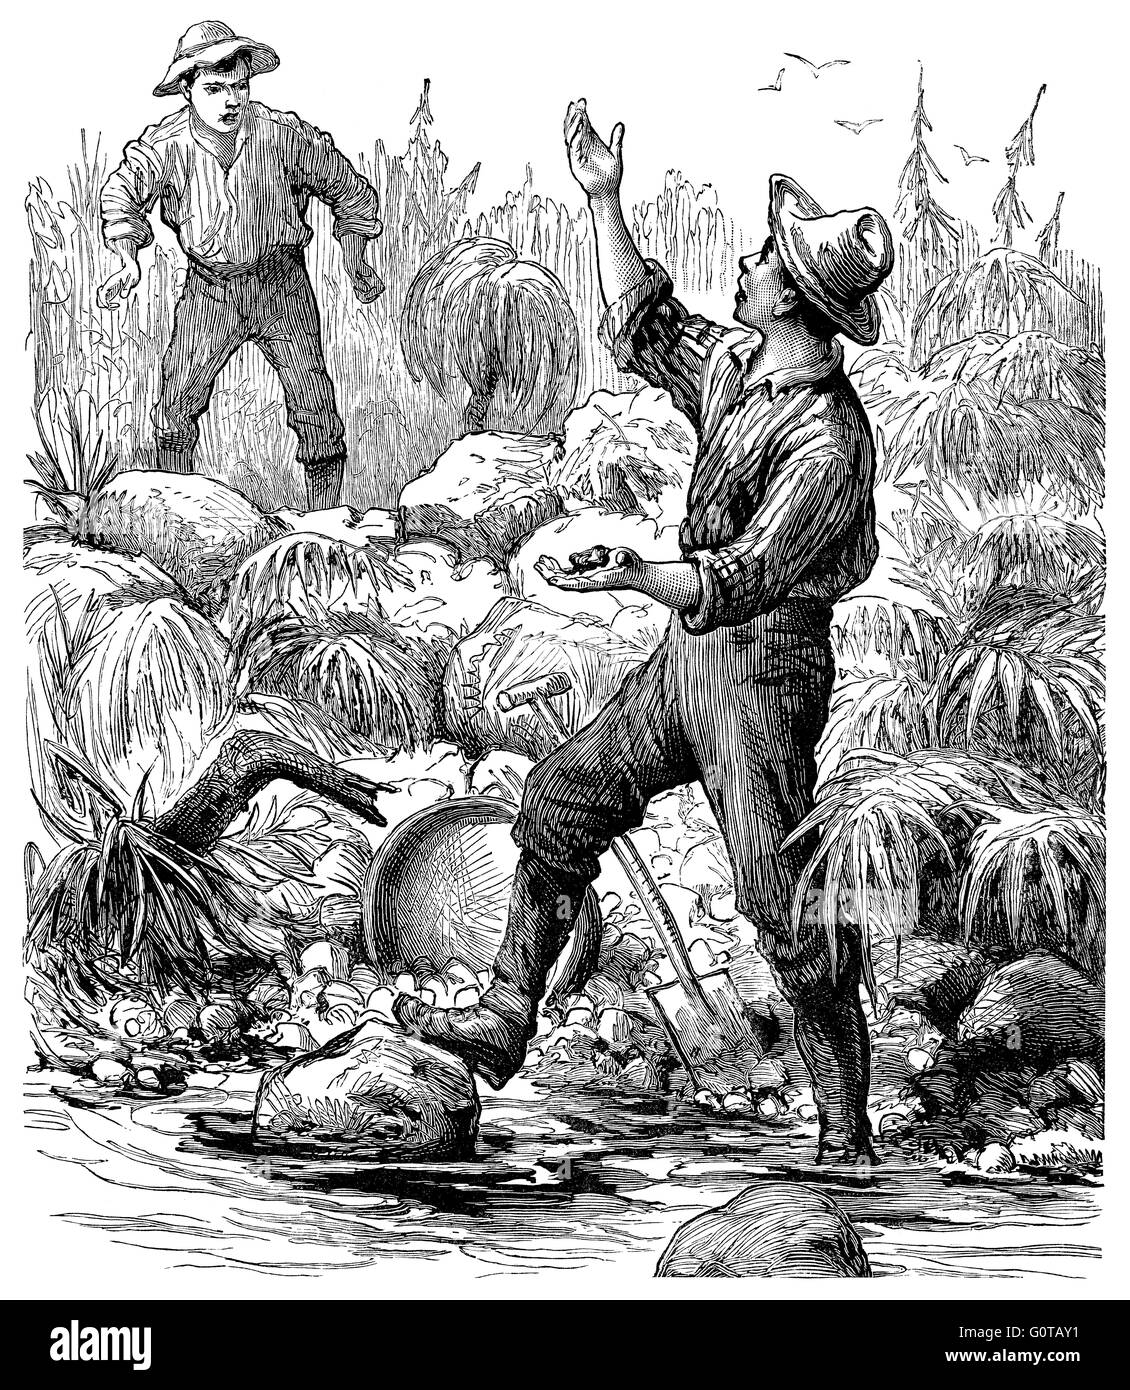 Black and white engraving of Victorian or Edwardian gold prospectors by a river. - Stock Image